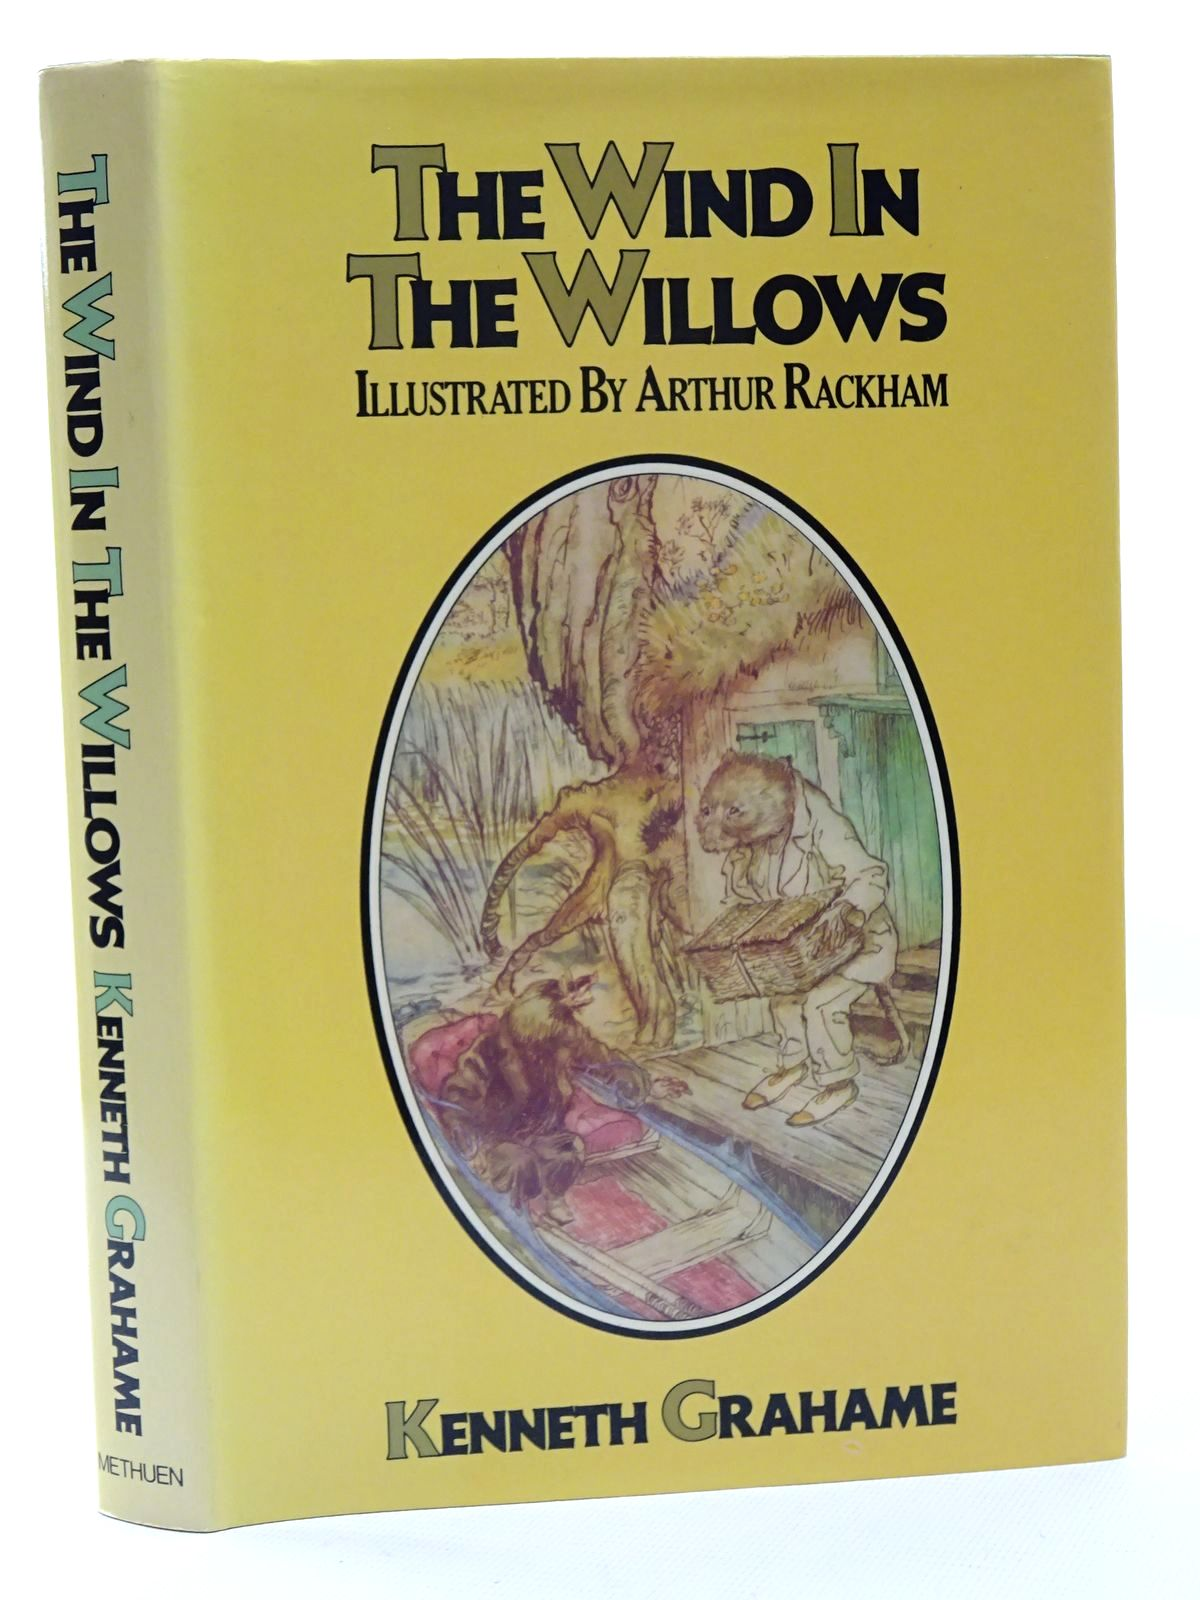 Photo of THE WIND IN THE WILLOWS written by Grahame, Kenneth illustrated by Rackham, Arthur published by Methuen Children's Books (STOCK CODE: 1317224)  for sale by Stella & Rose's Books